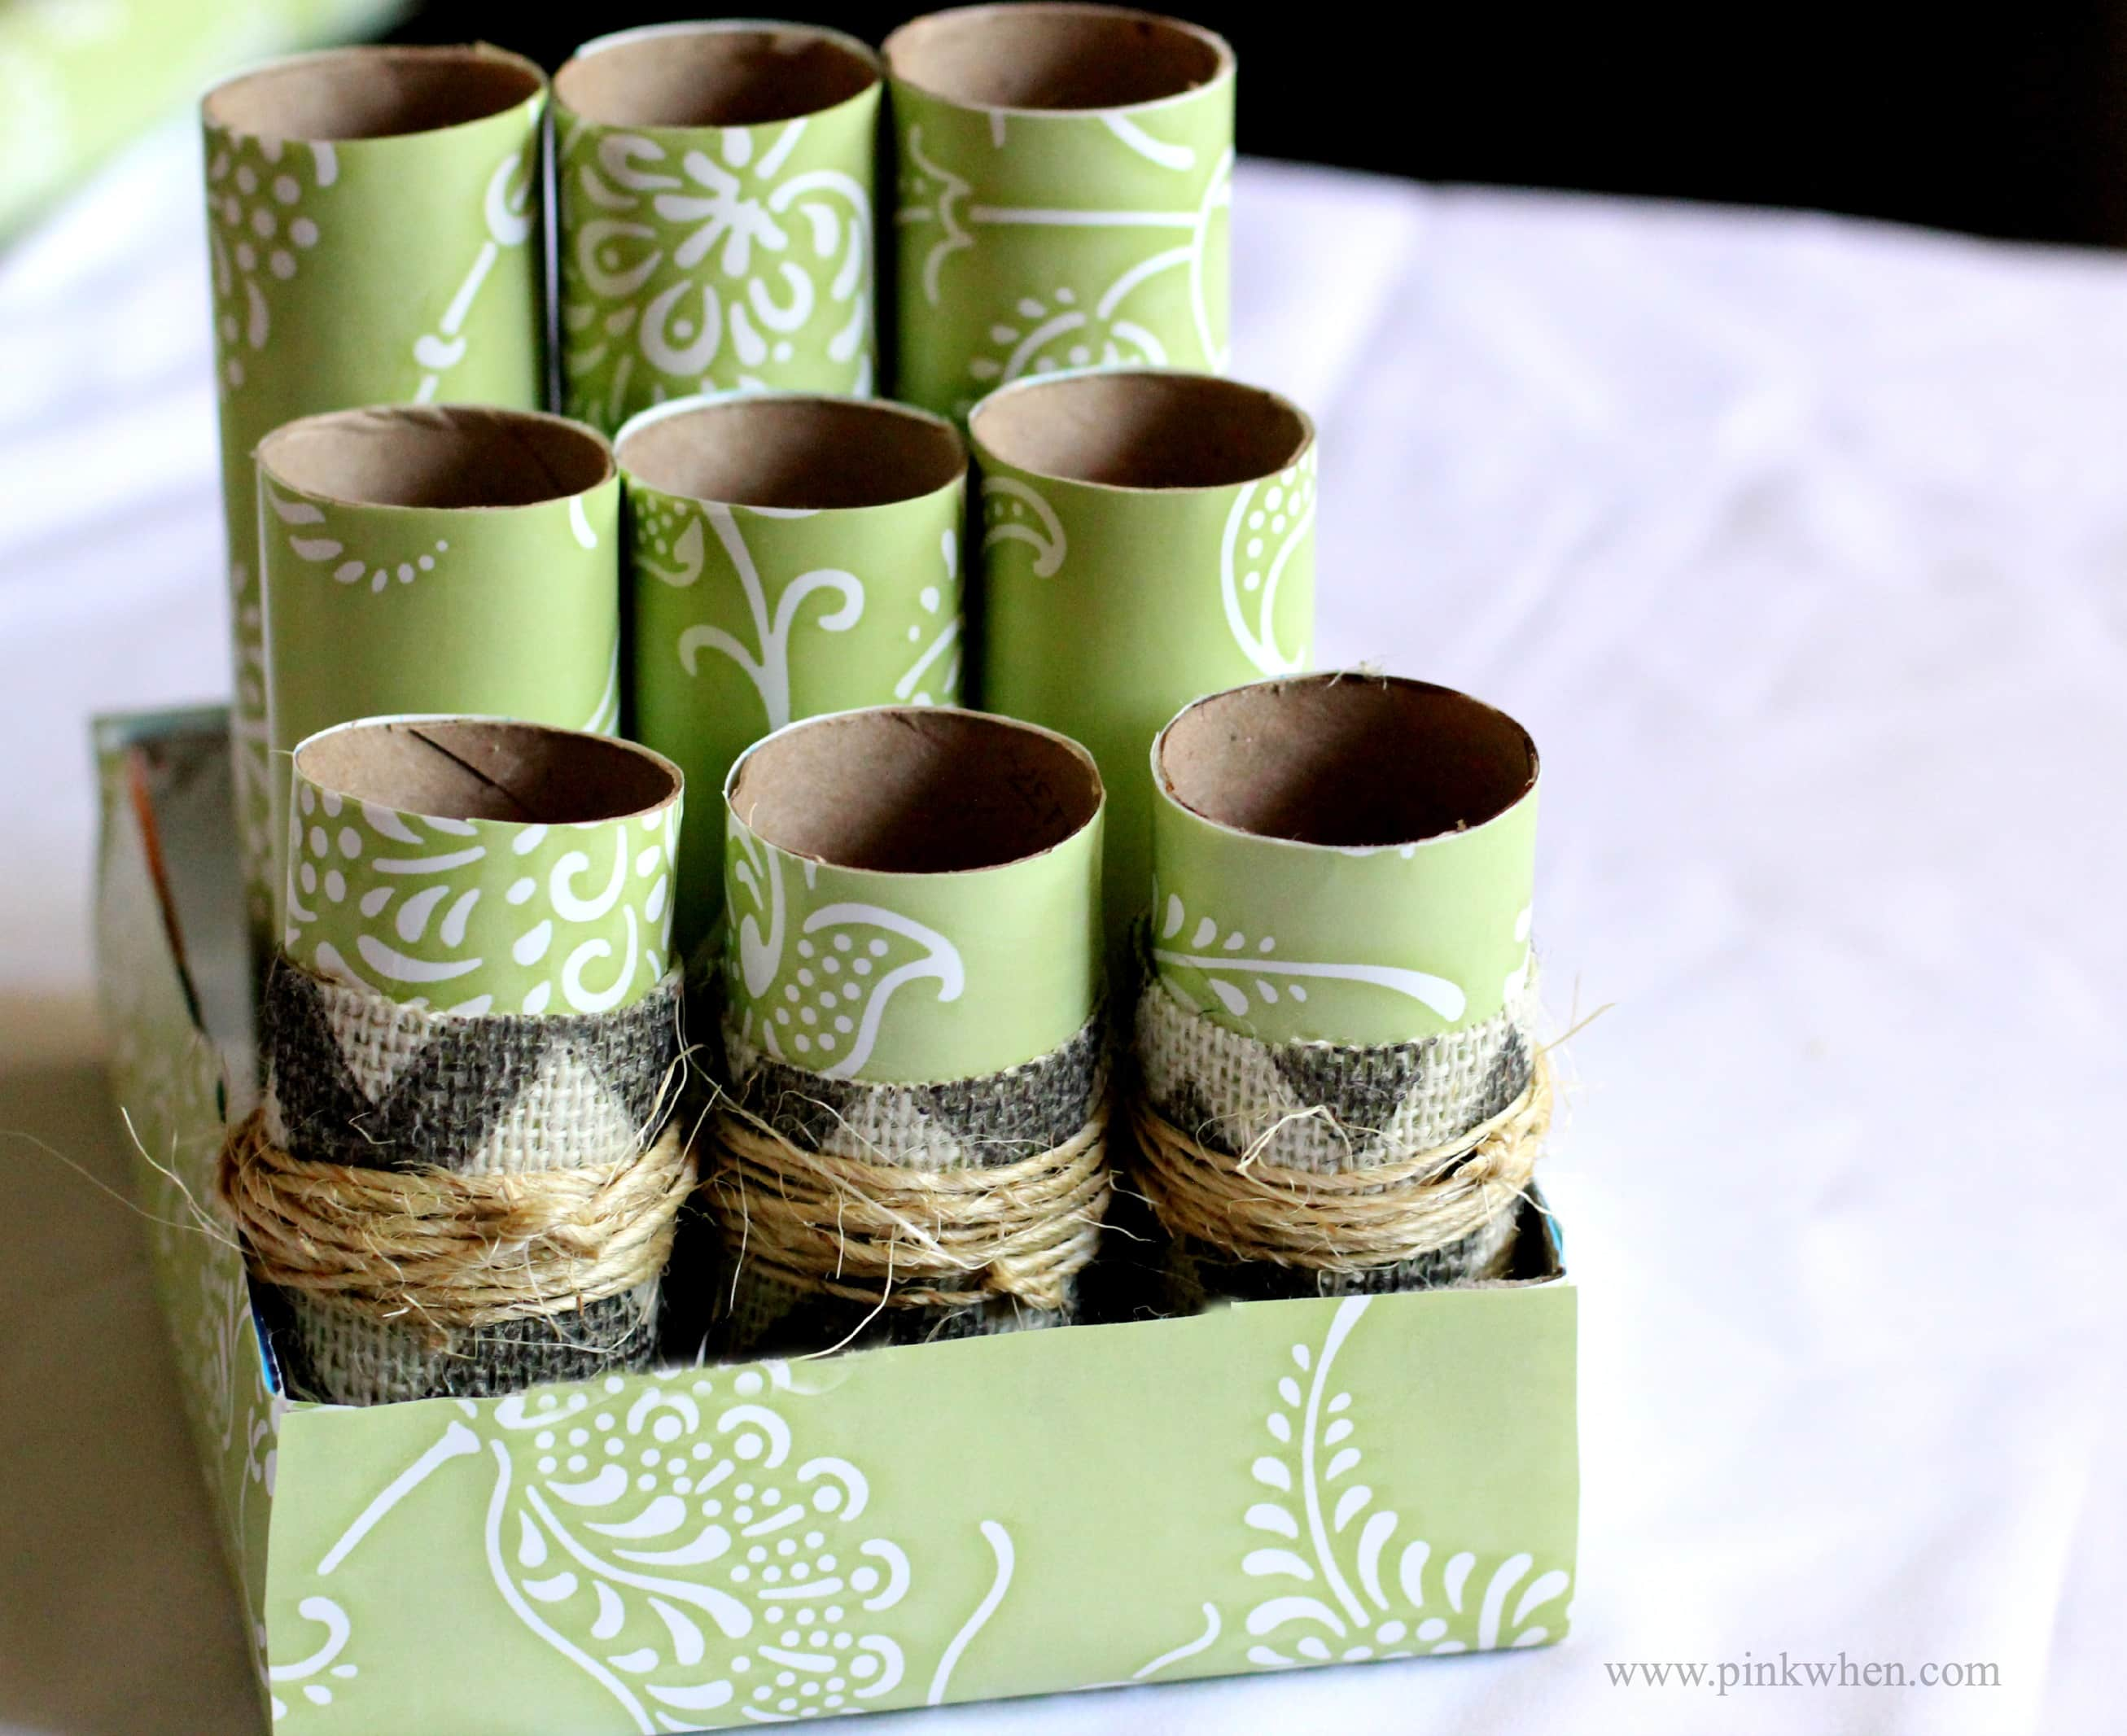 DIY Cardboard Roll Desk Caddy #ad #valueseekersclub